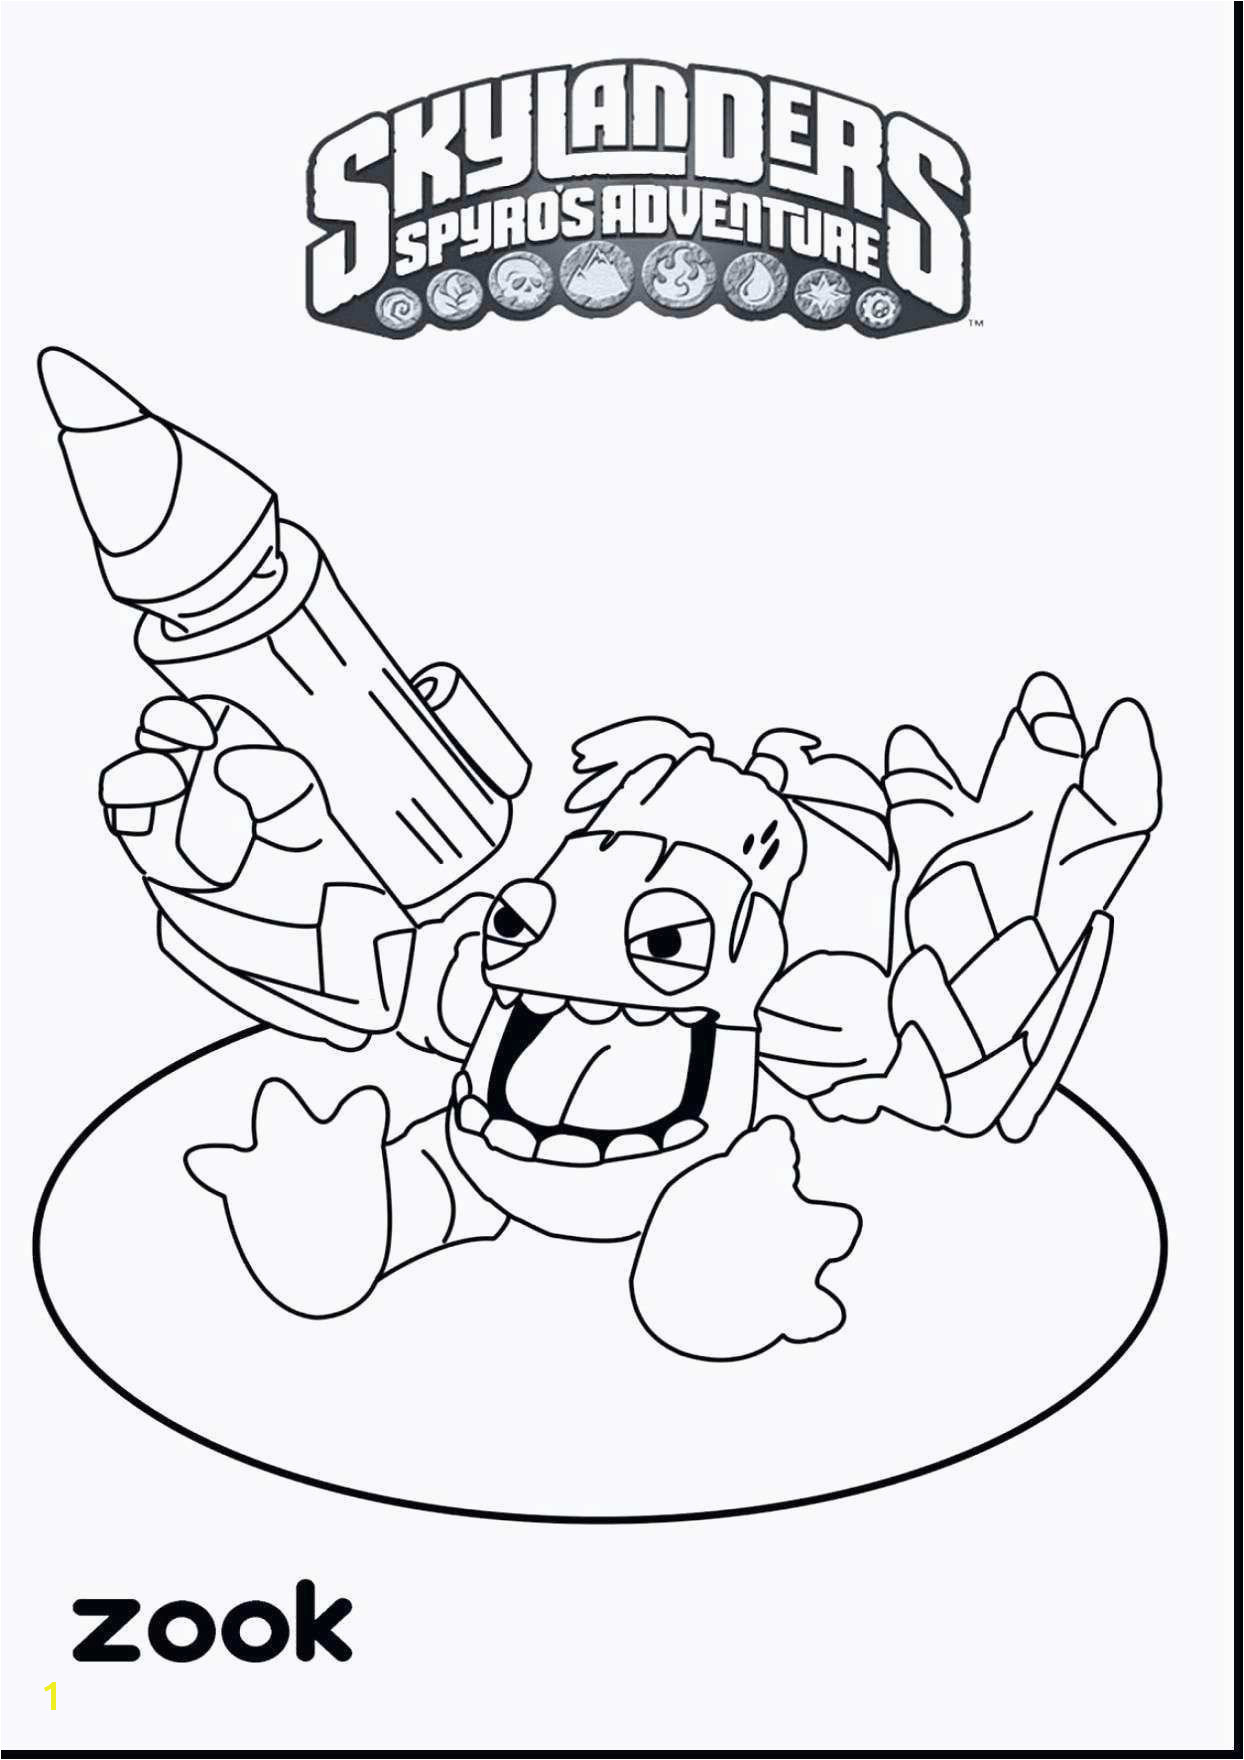 Sports Coloring Pages Best Printable Sports Coloring Pages for Kids Sports Coloring Pages Beautiful